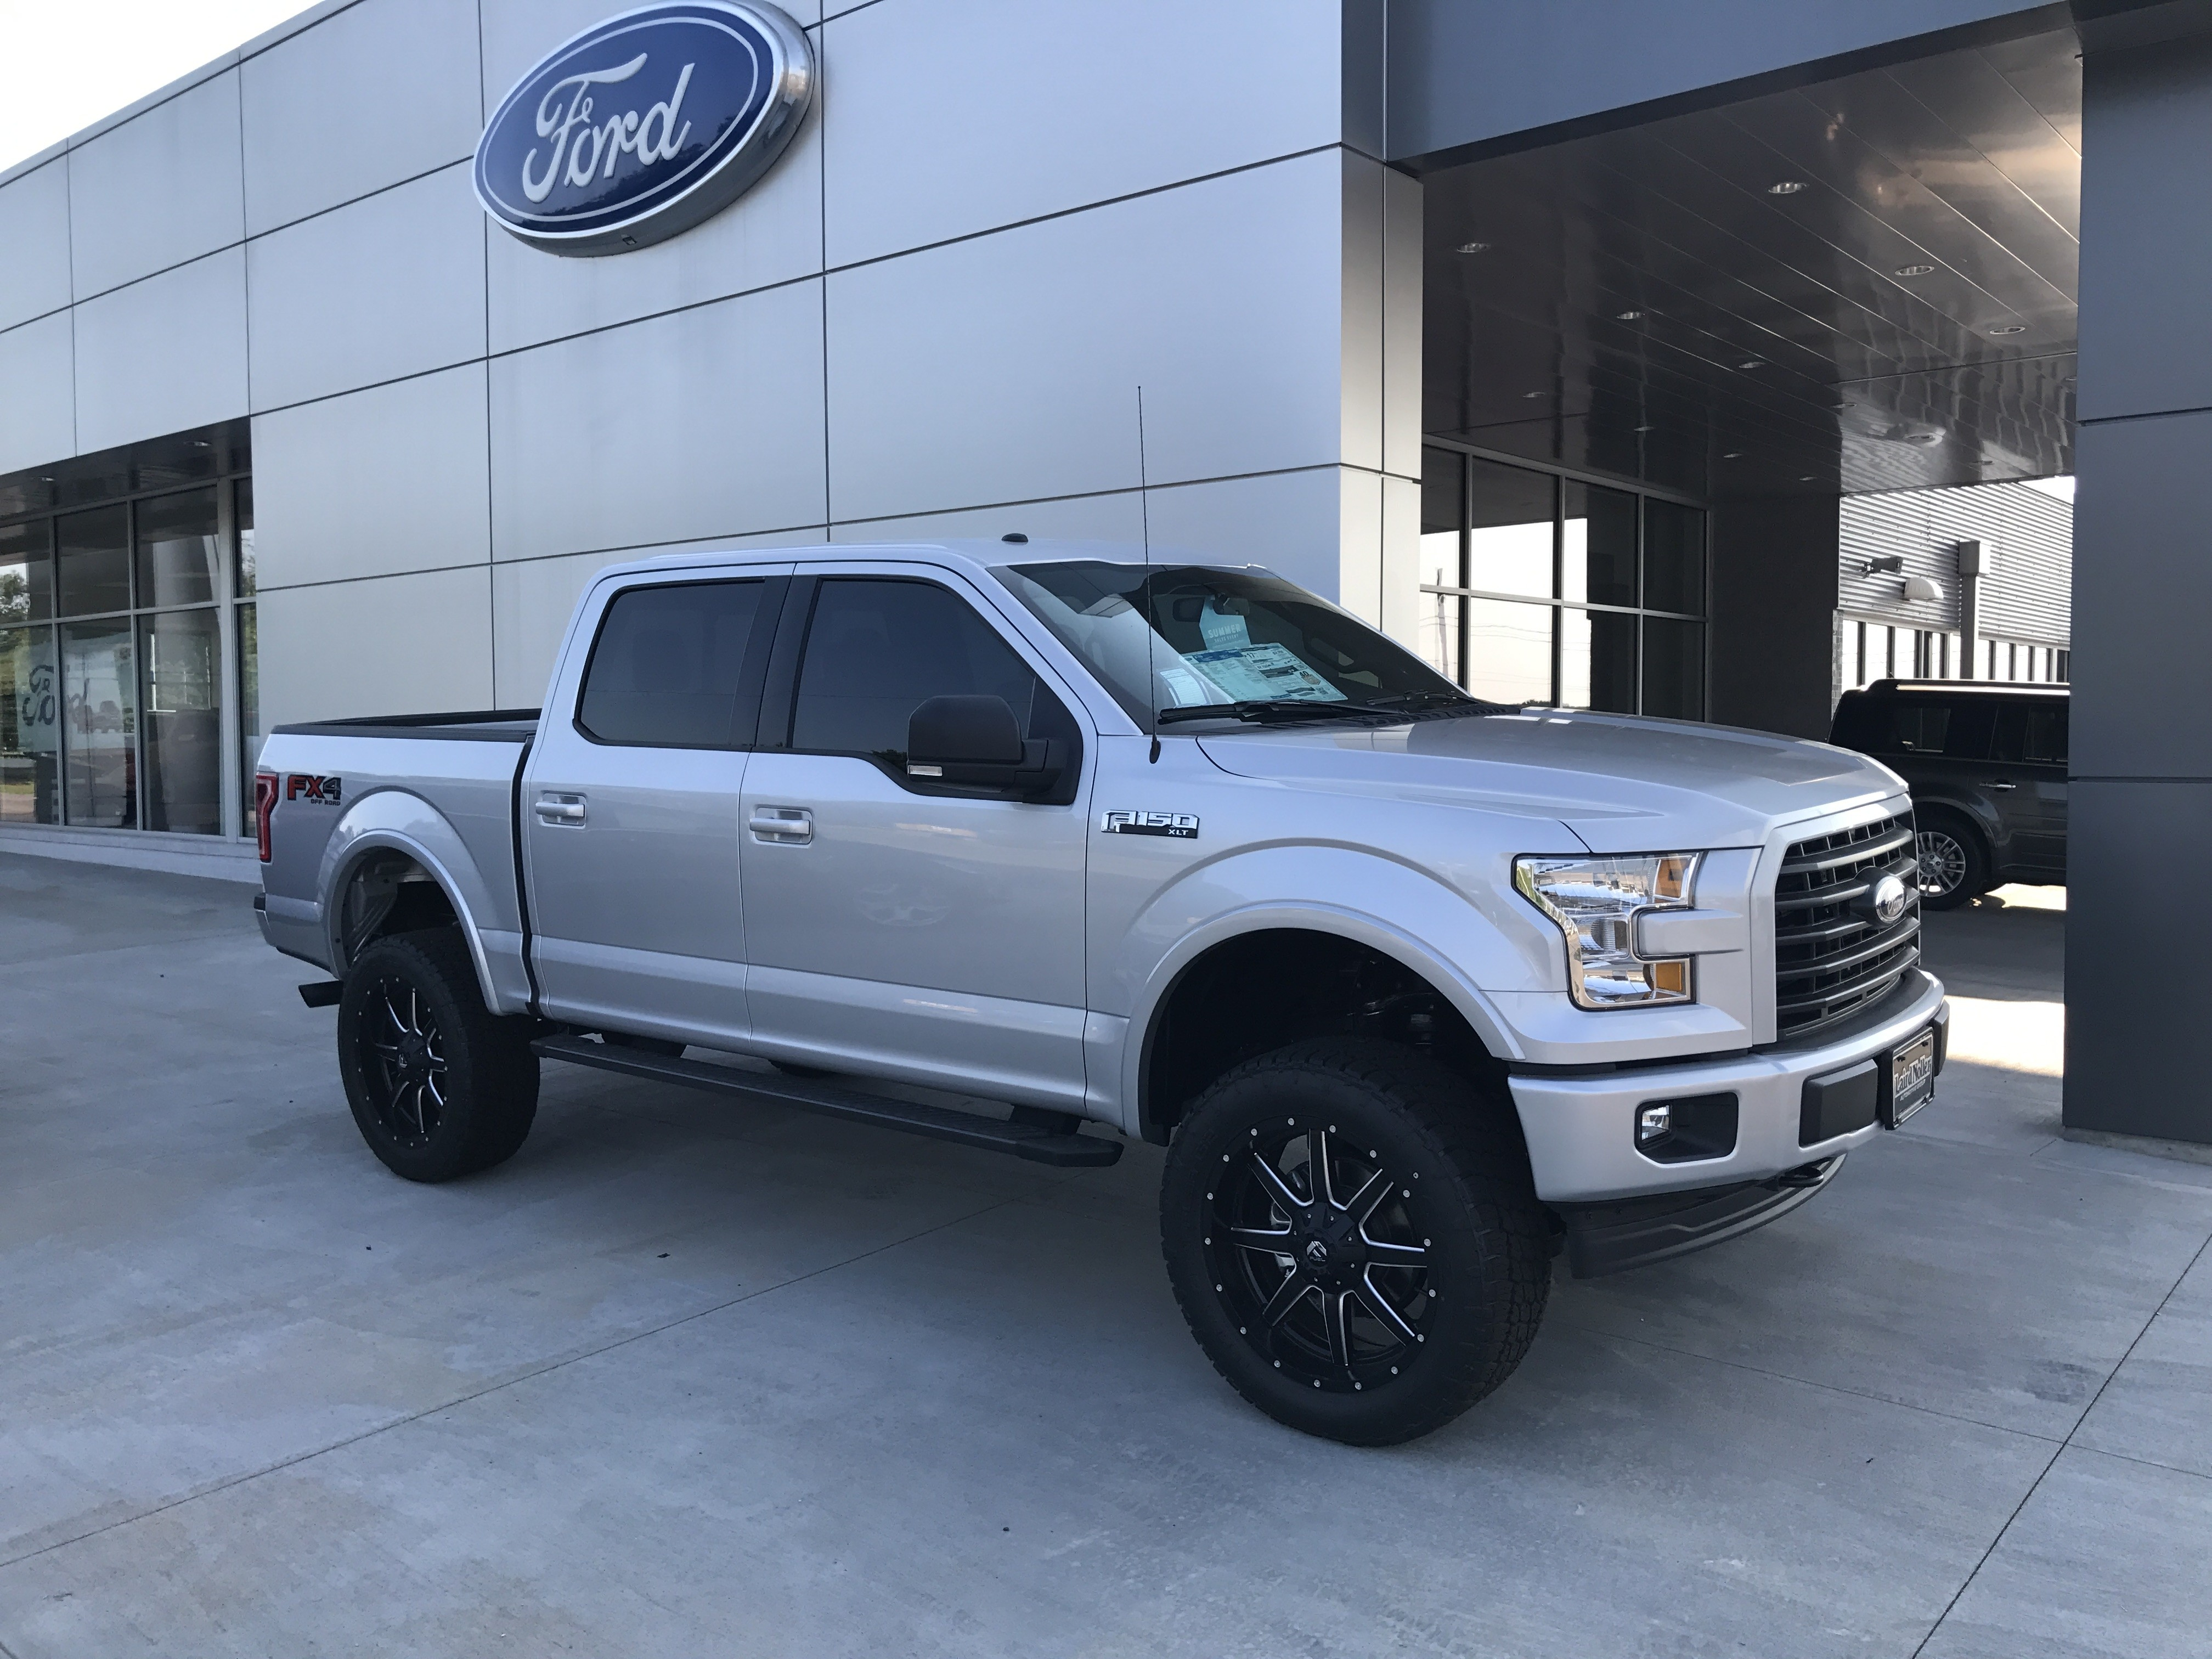 2017 Ford F150 Lifted >> 2017 Lifted Ford F 150 Trucks Laird Noller Auto Group